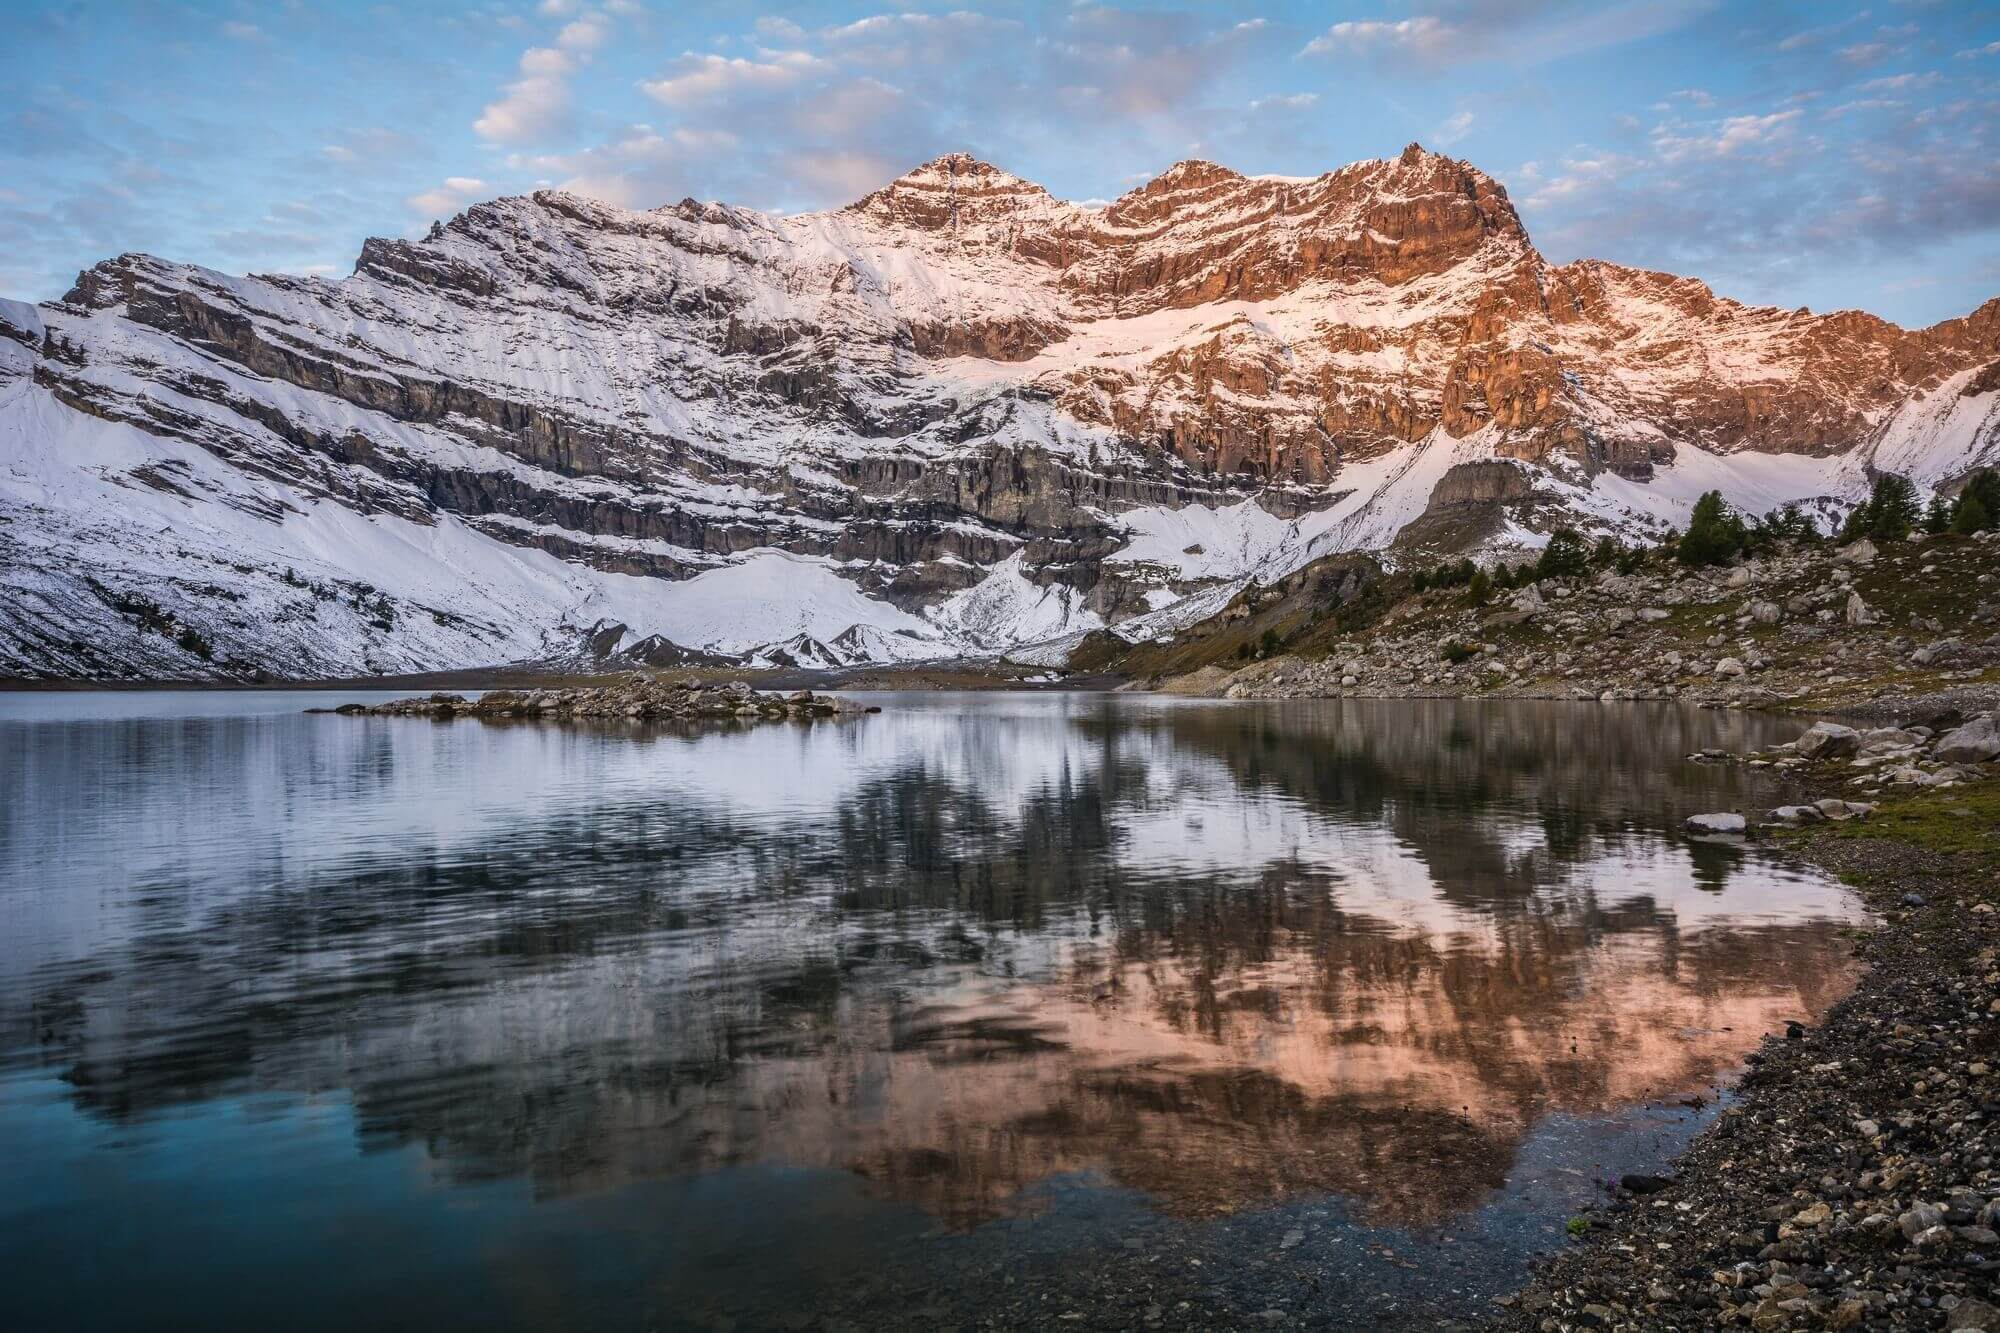 Sunrise at Lac de Salanfe